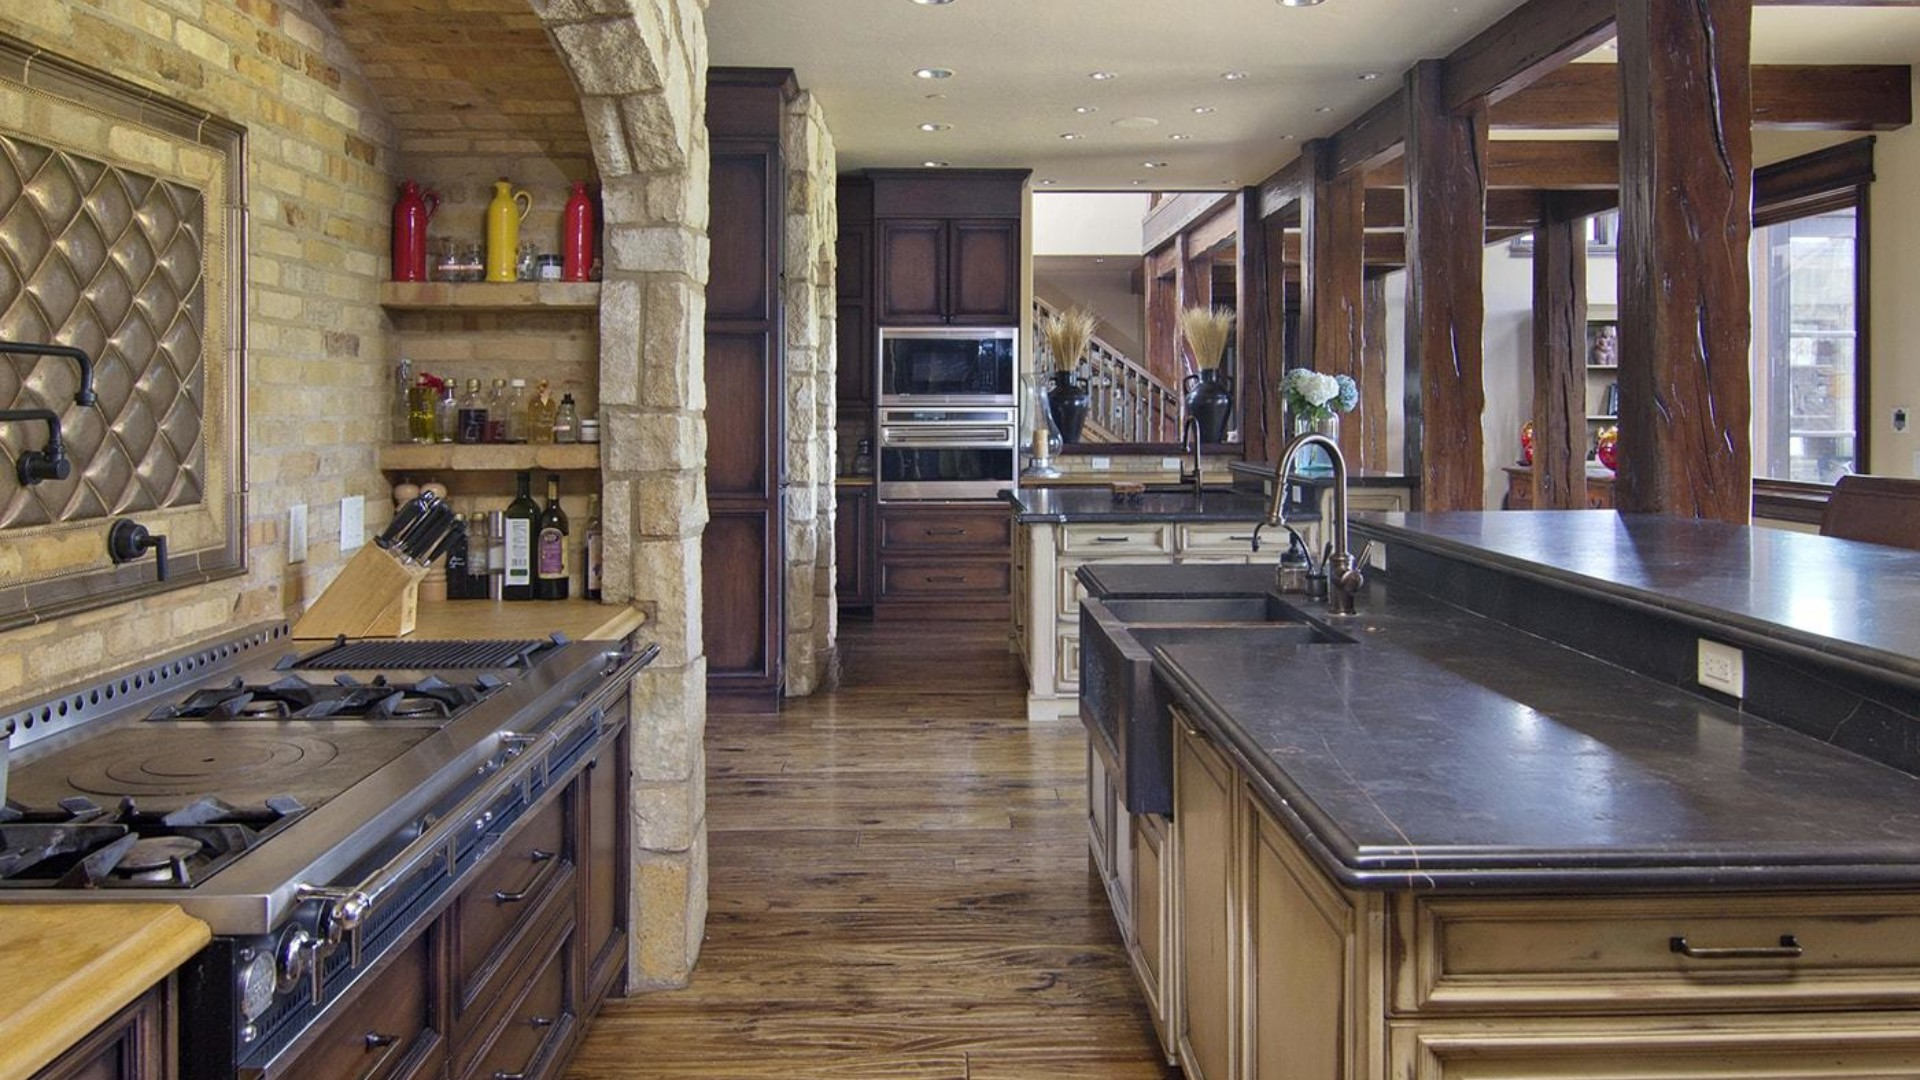 the kitchen of a jackson hole, wyoming mansion with dark granite countertops and rustic interior